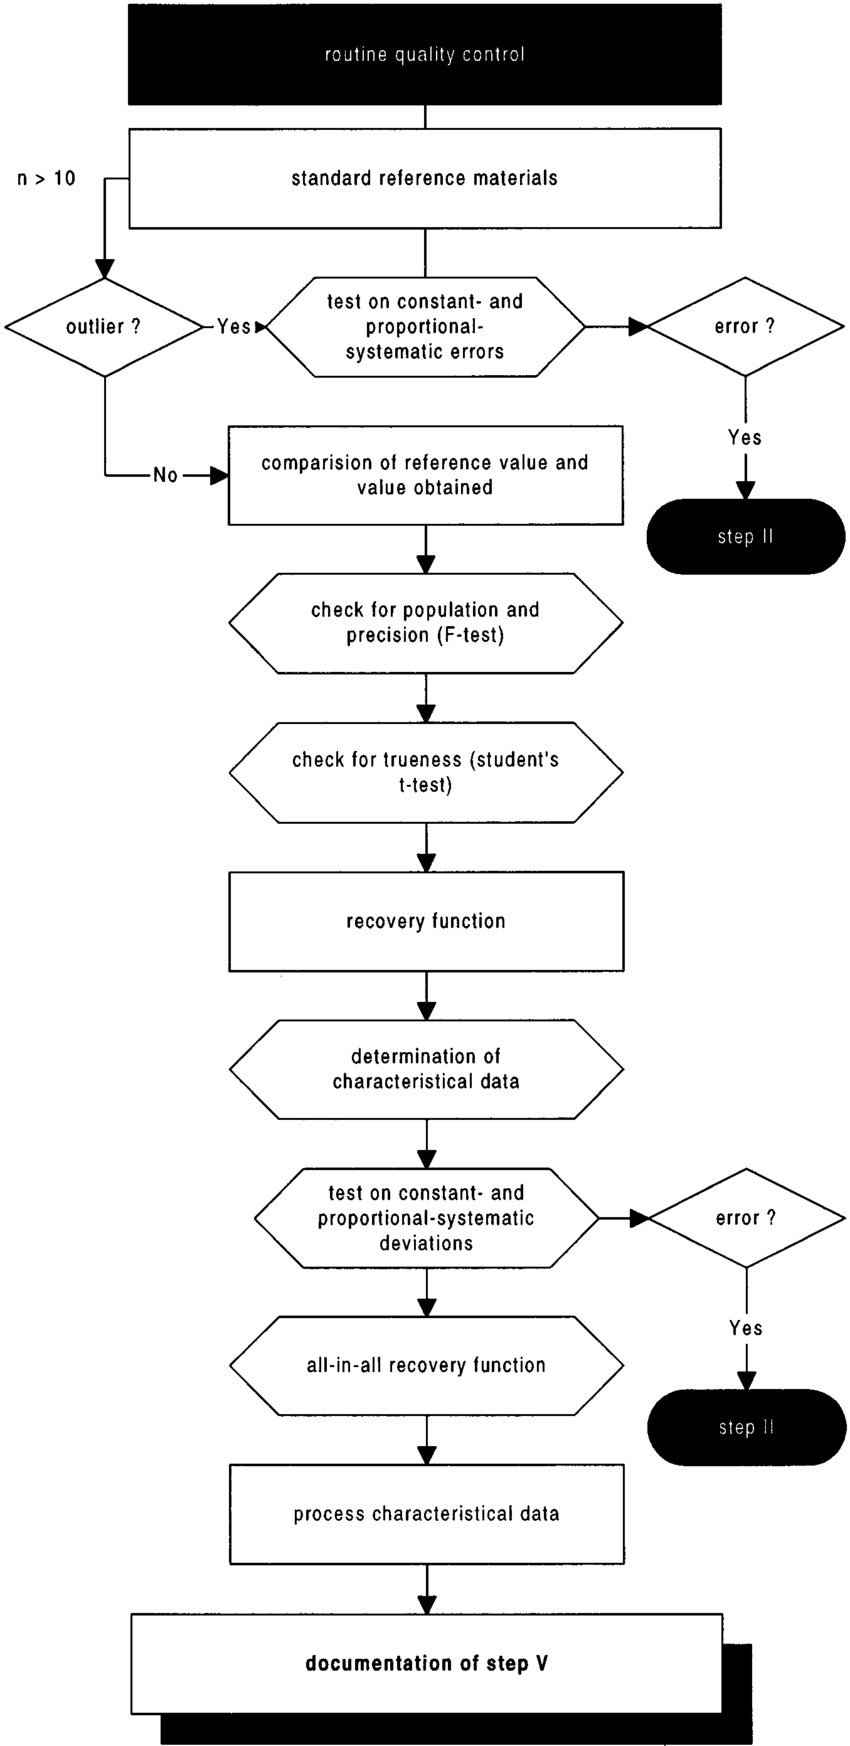 medium resolution of flow chart of step v routine quality control with standard reference materials